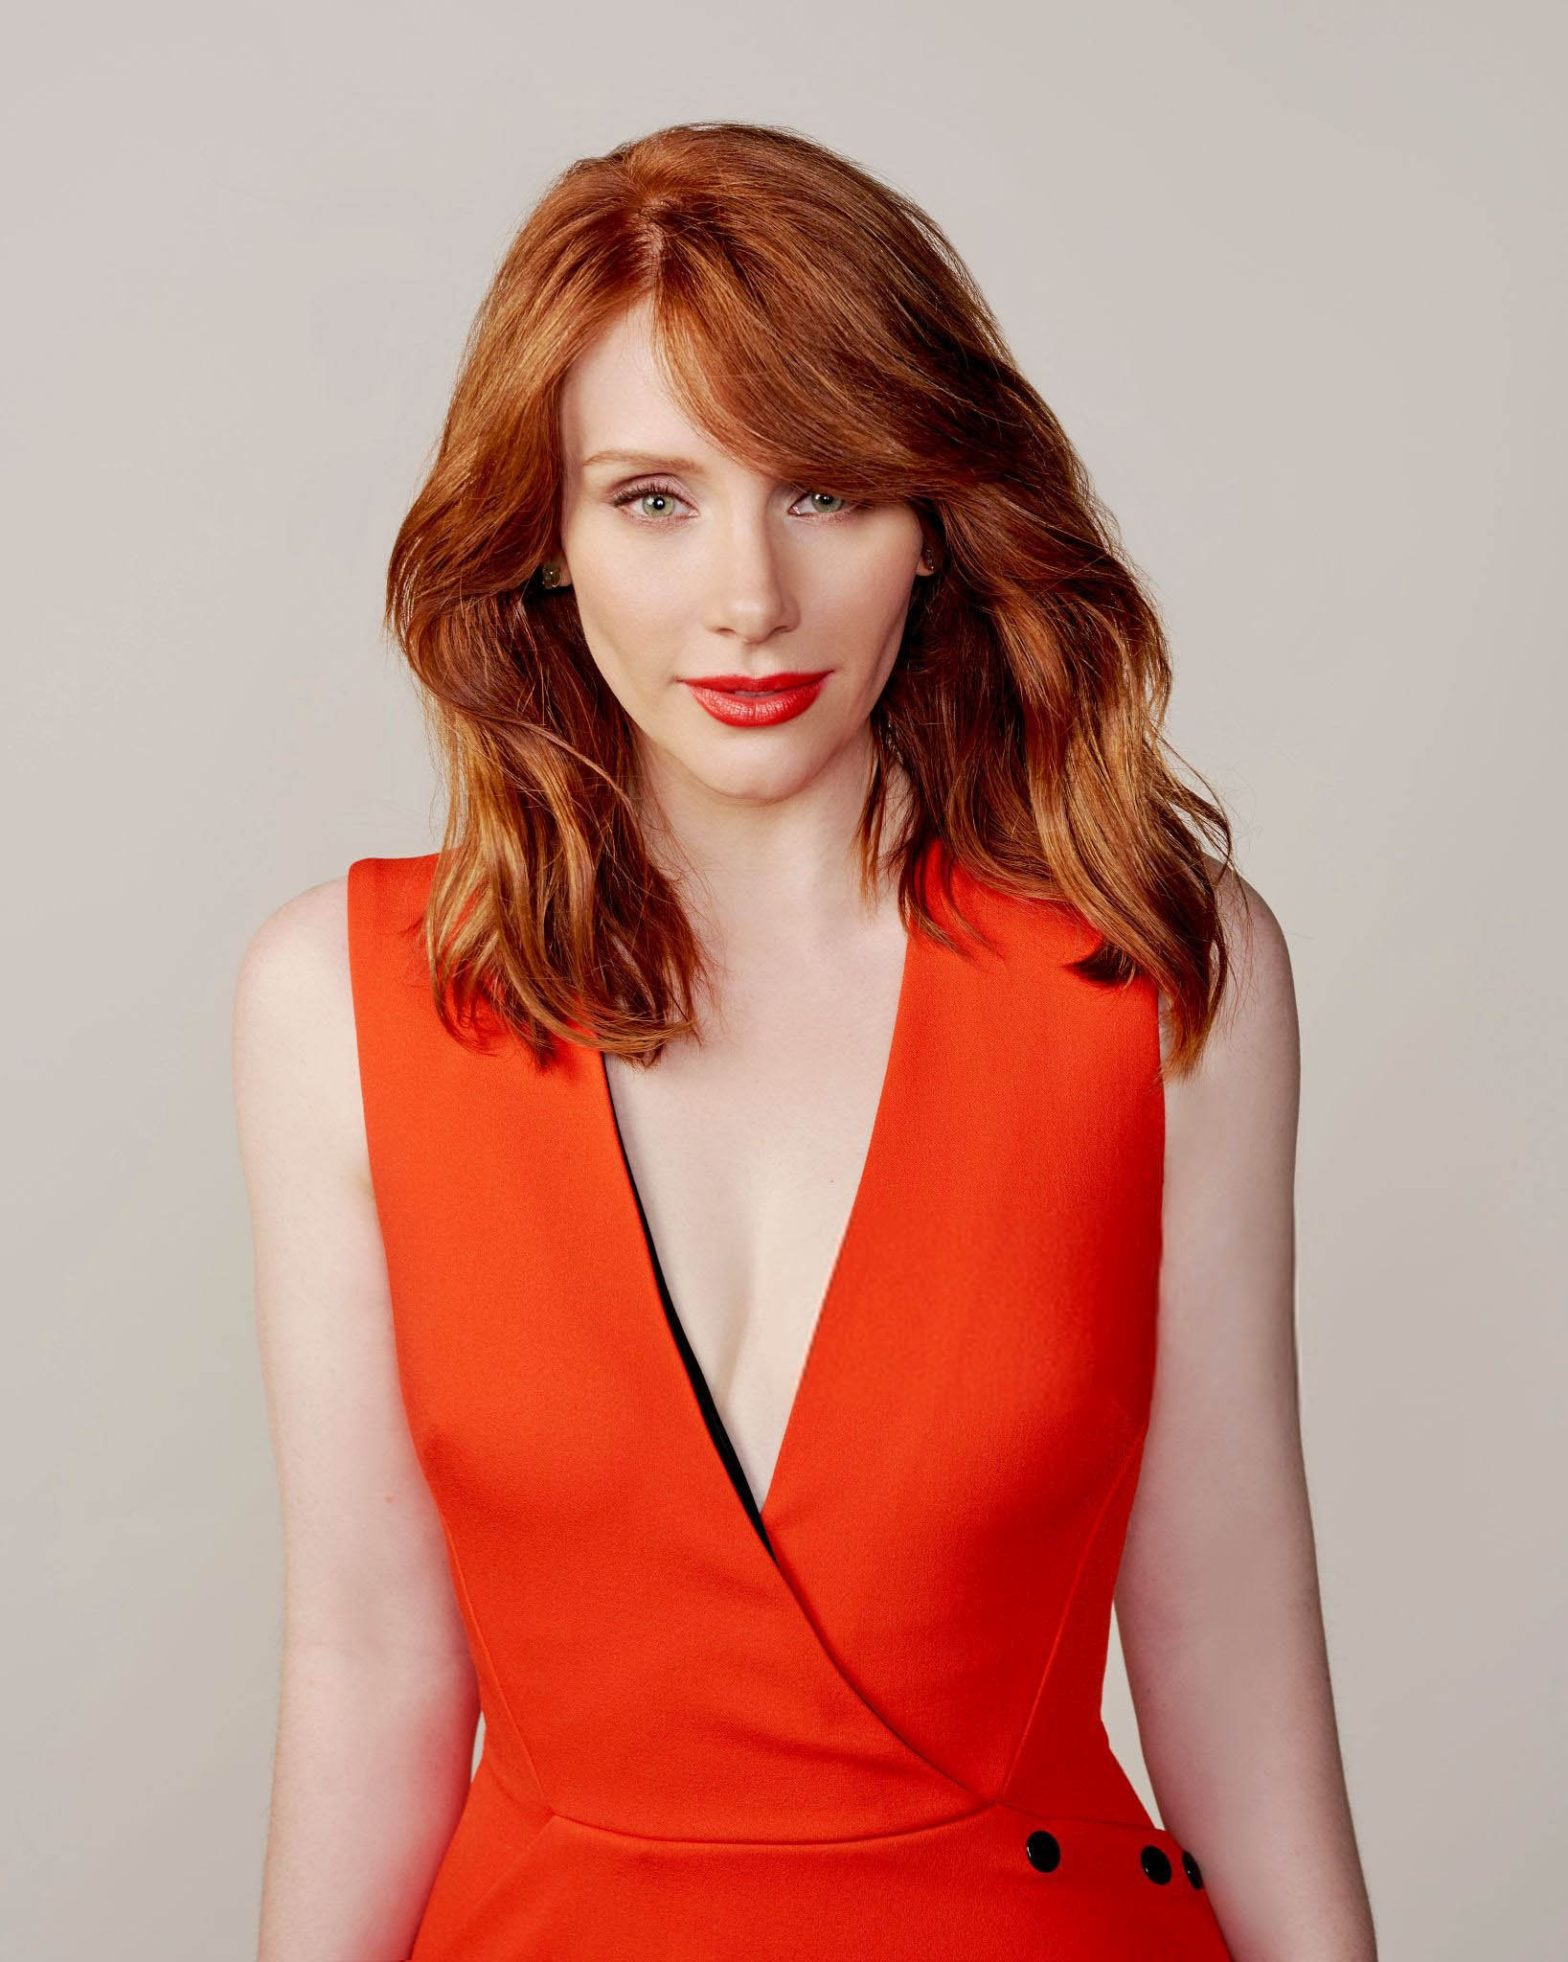 Hottest Bryce Dallas Howard Sexy Bikini Pictures Which Are Amazing